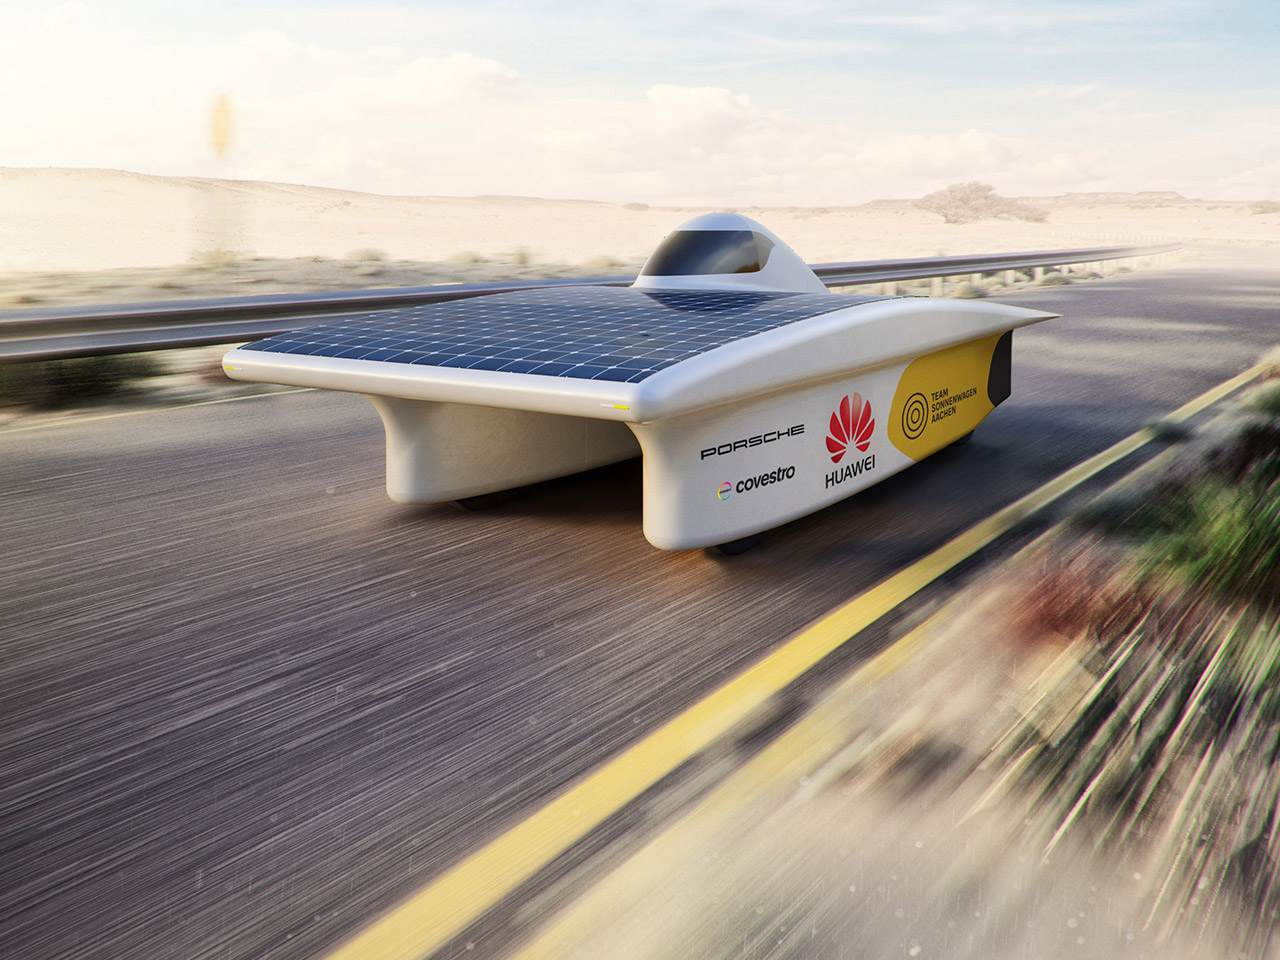 Porsche Solar-powered vehicle: Porsche assists German team